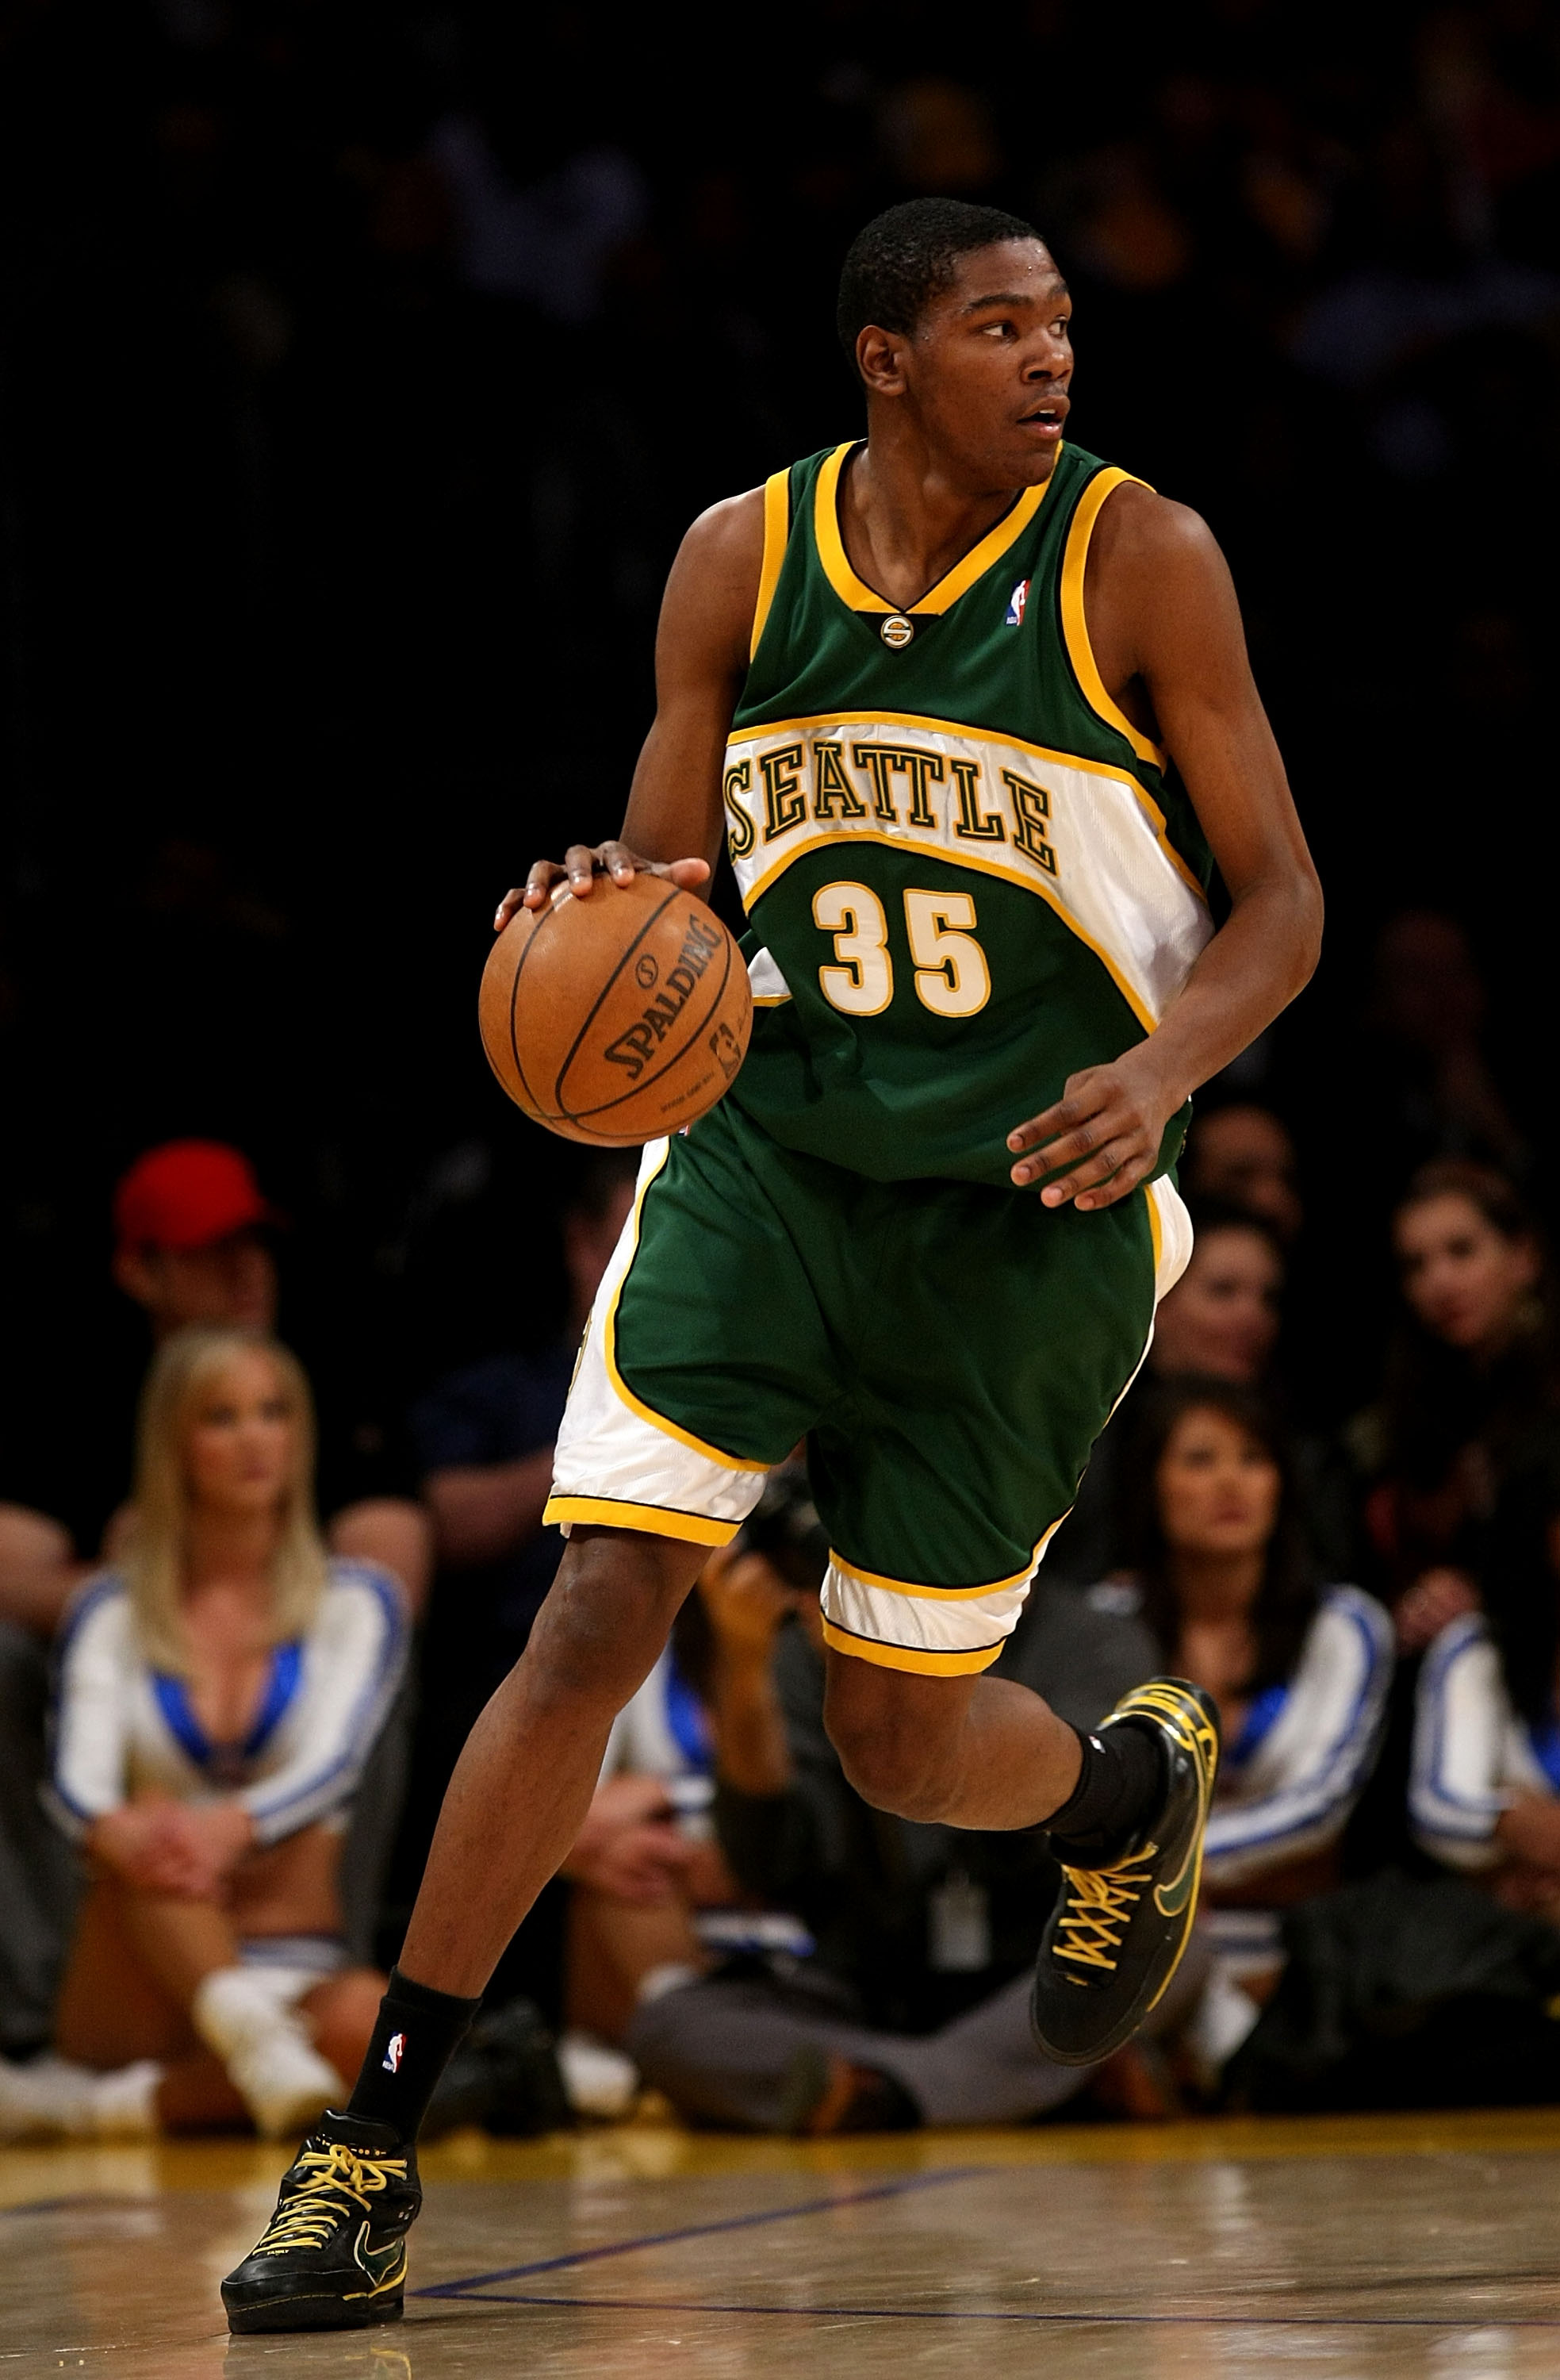 LOS ANGELES, CA - NOVEMBER 27:  Kevin Durant #35 of the Seattle SuperSonics dribbles against the Los Angeles Lakers on November 27, 2007 at Staples Center in Los Angeles, California.   The Lakers won 106-99. NOTE TO USER: User expressly acknowledges and a